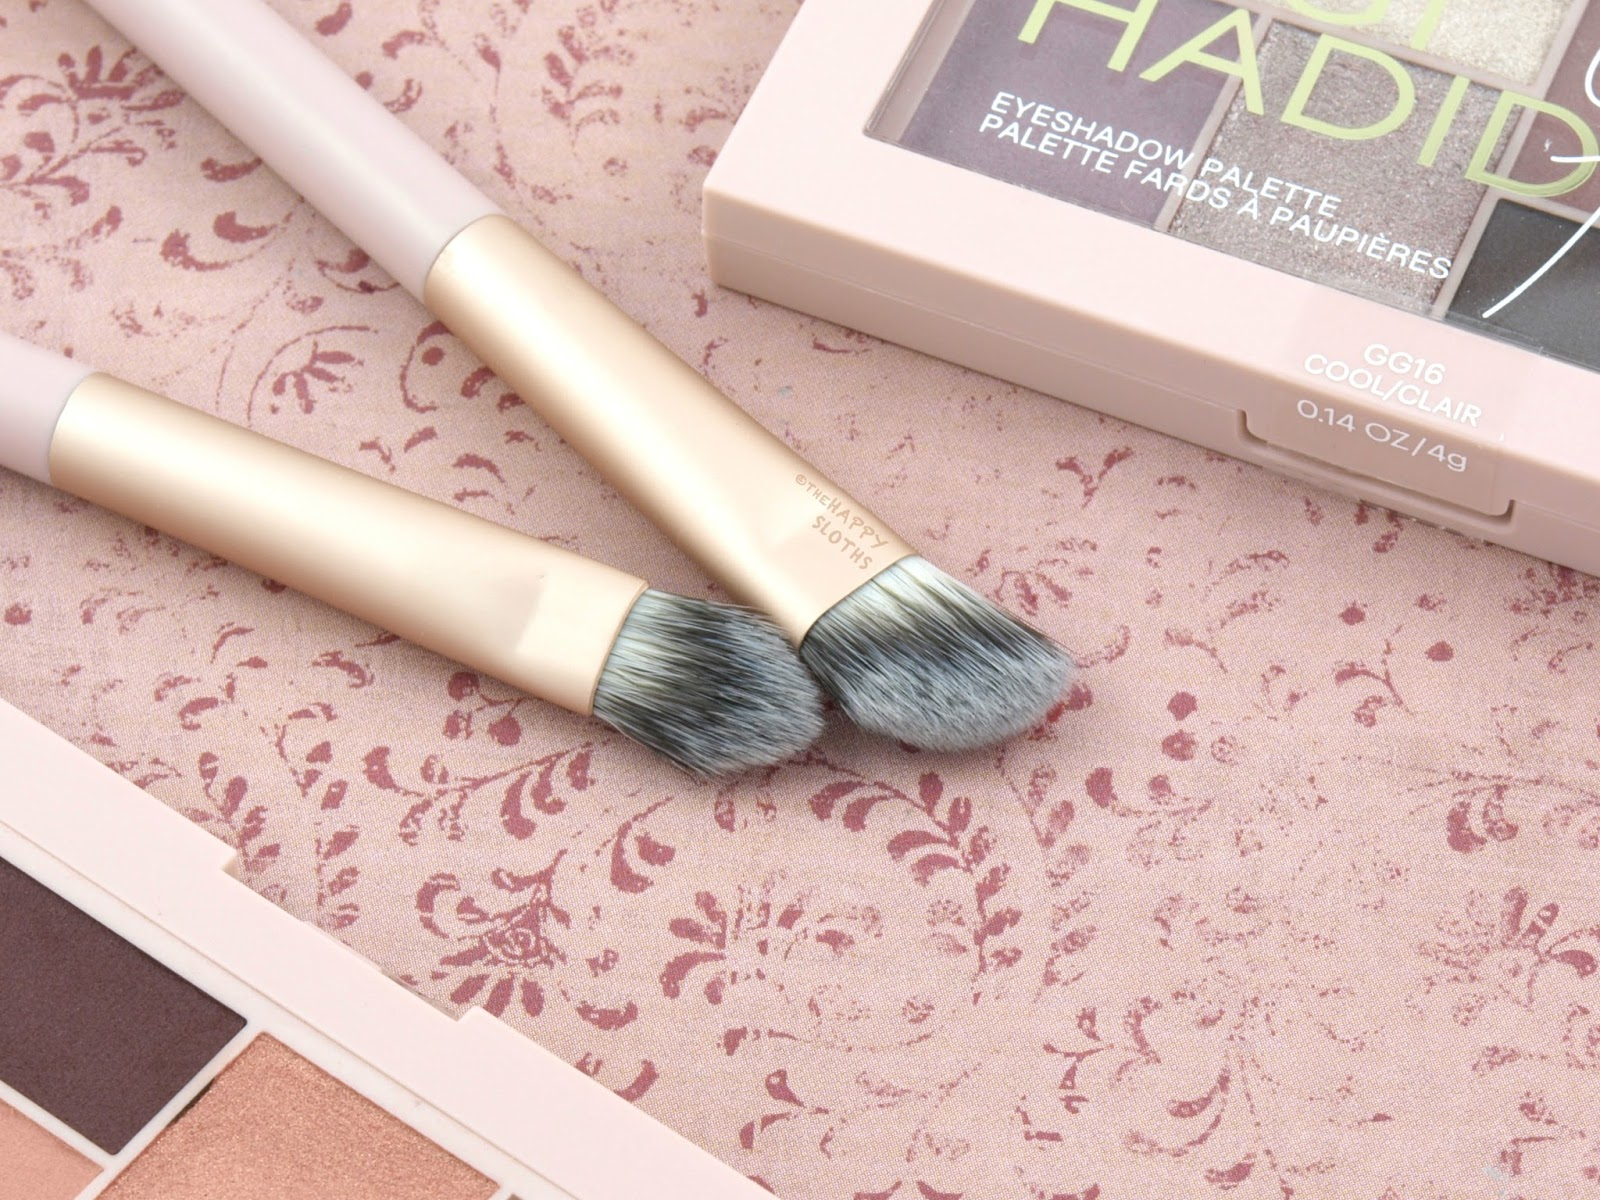 Maybelline x Gigi Hadid Eyeshadow Brushes: Review